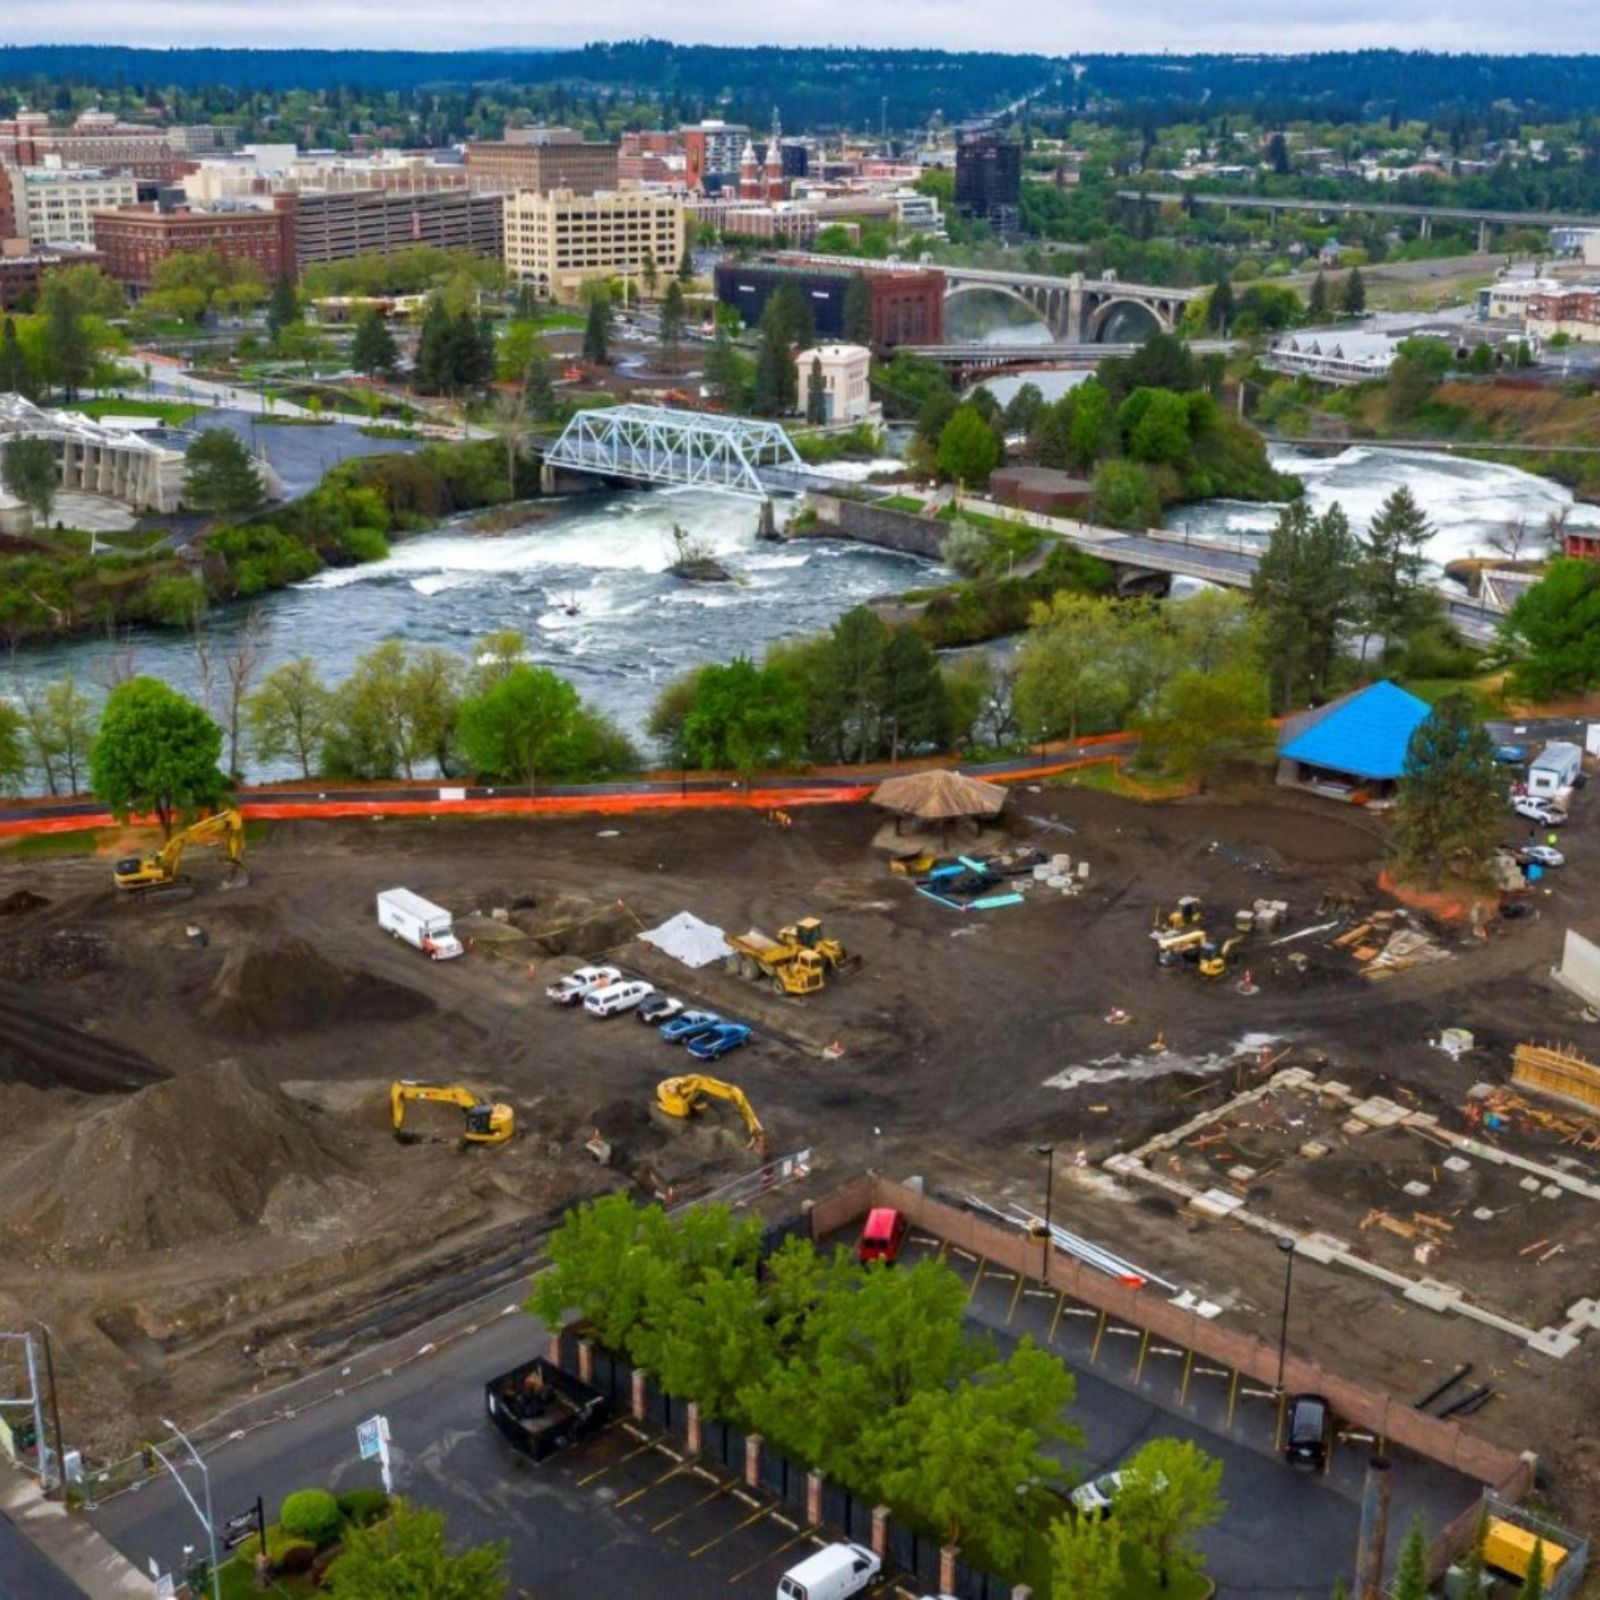 #WorksiteWednesday Check out these aerial shots of the Northbank Playground construction progress, courtesy of Selkirk Development. We are thankful for the opportunity to build community here in Spokane.    #BernardoWills #BernardoWillsArchitects #Northwest #PNW #WA #Spokane #WashingtonState #UpperleftUSA #InlandNorthwest #GreatPNW #playground #construction #landscapearchitecture #landscapedesign #landscaping #landscapeconstruction #landscapingideas #landscapinglife #urbanplanning #urbandesign